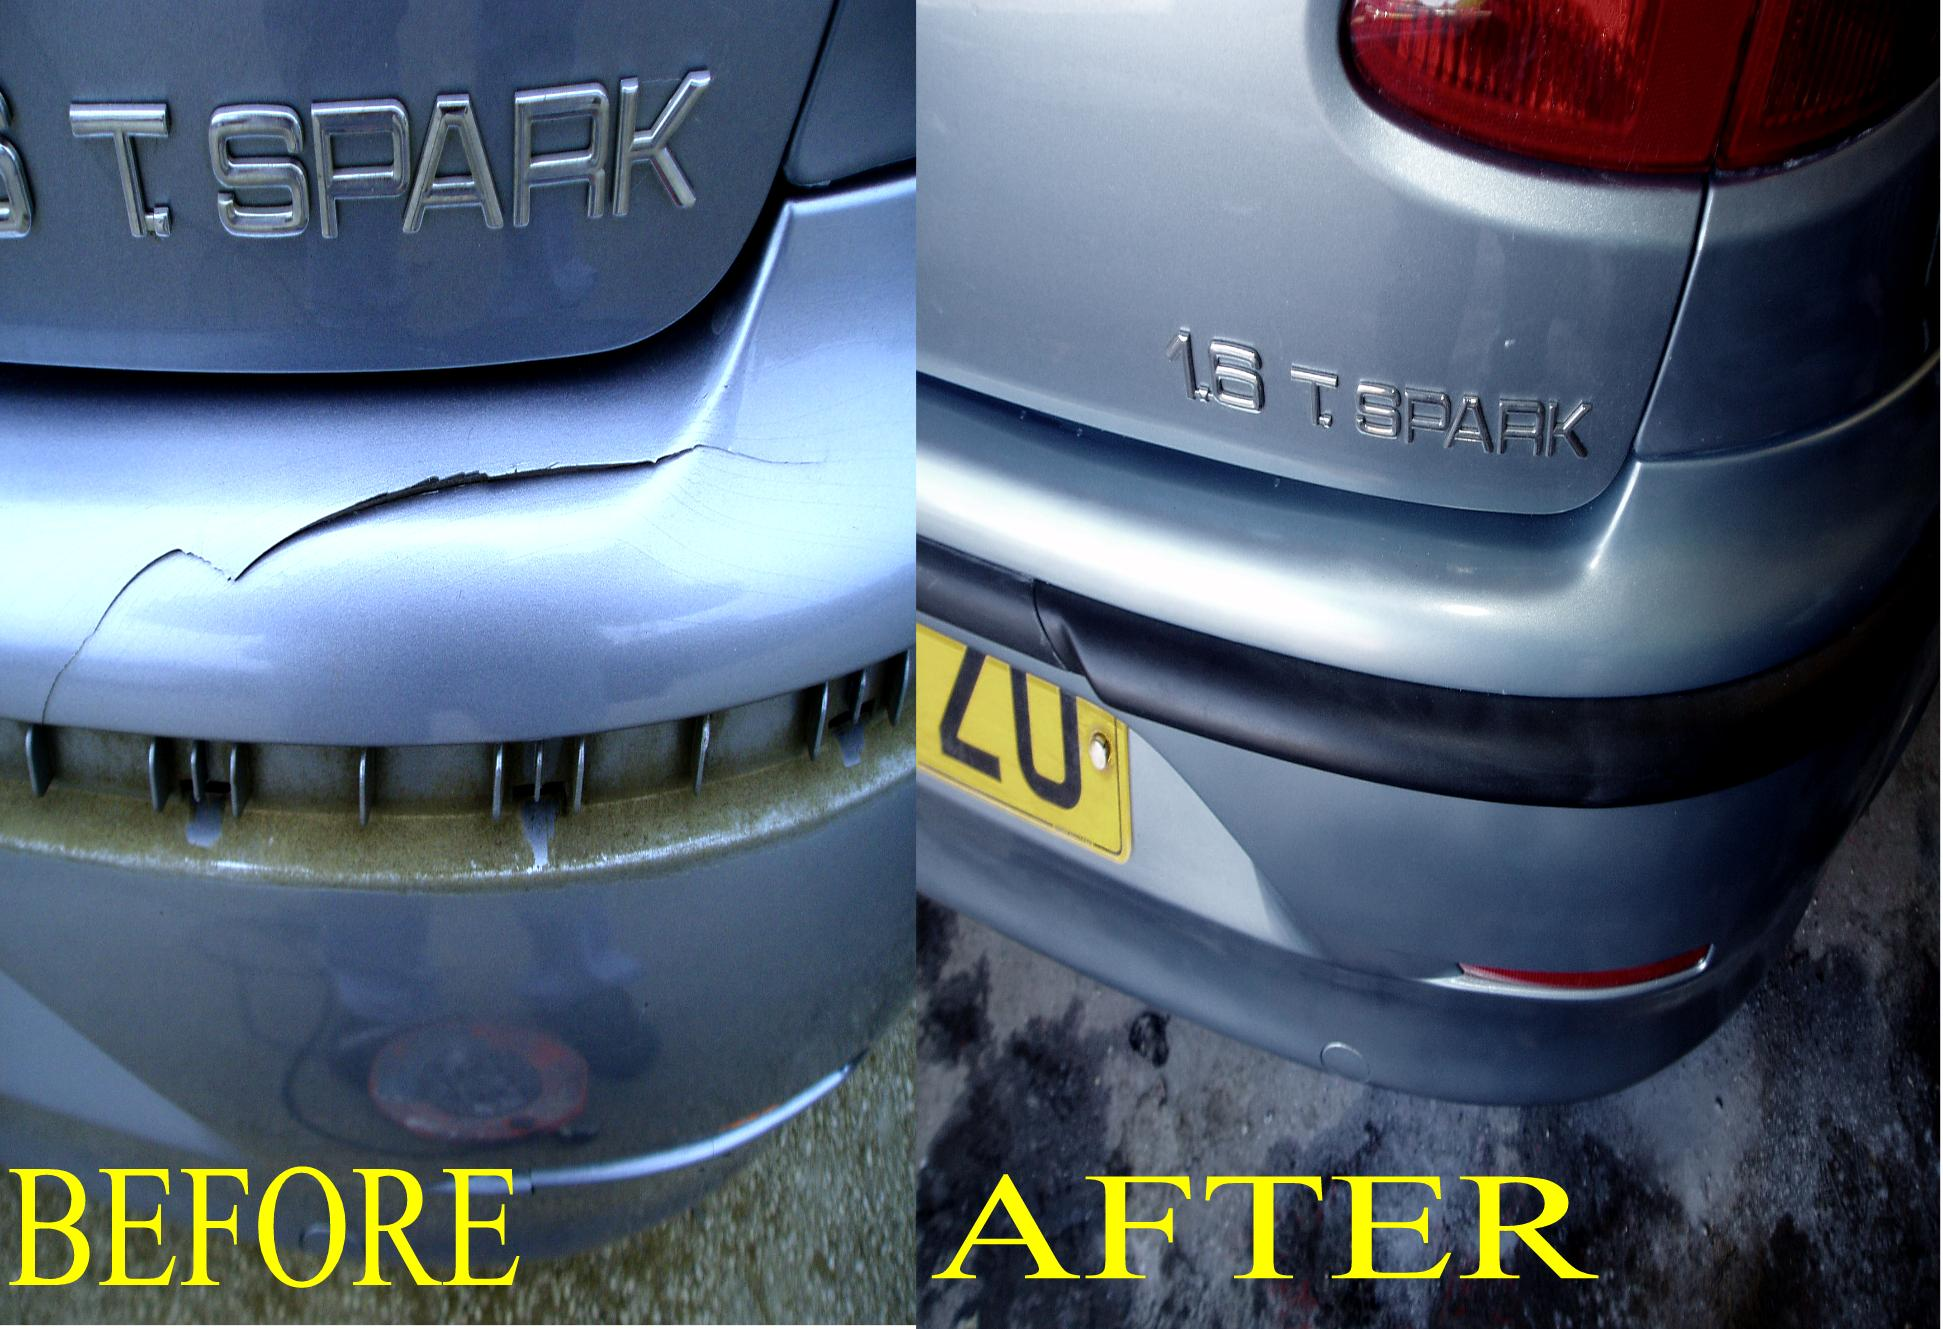 QUALITY BUMPER REPAIRS IN THE WEST MIDLANDS,BIRMINGHAM,WORCESTER,SOLIHULL AREA CRACKED BUMPERS,SPLIT BUMPERS,BROKEN BUMPERS ALL REPAIRED BY QUALITY SMART ON SITE AT YOUR HOME OR WORKPLACE ALL COLOURS REPAIRED TO A HIGH STANDARD .